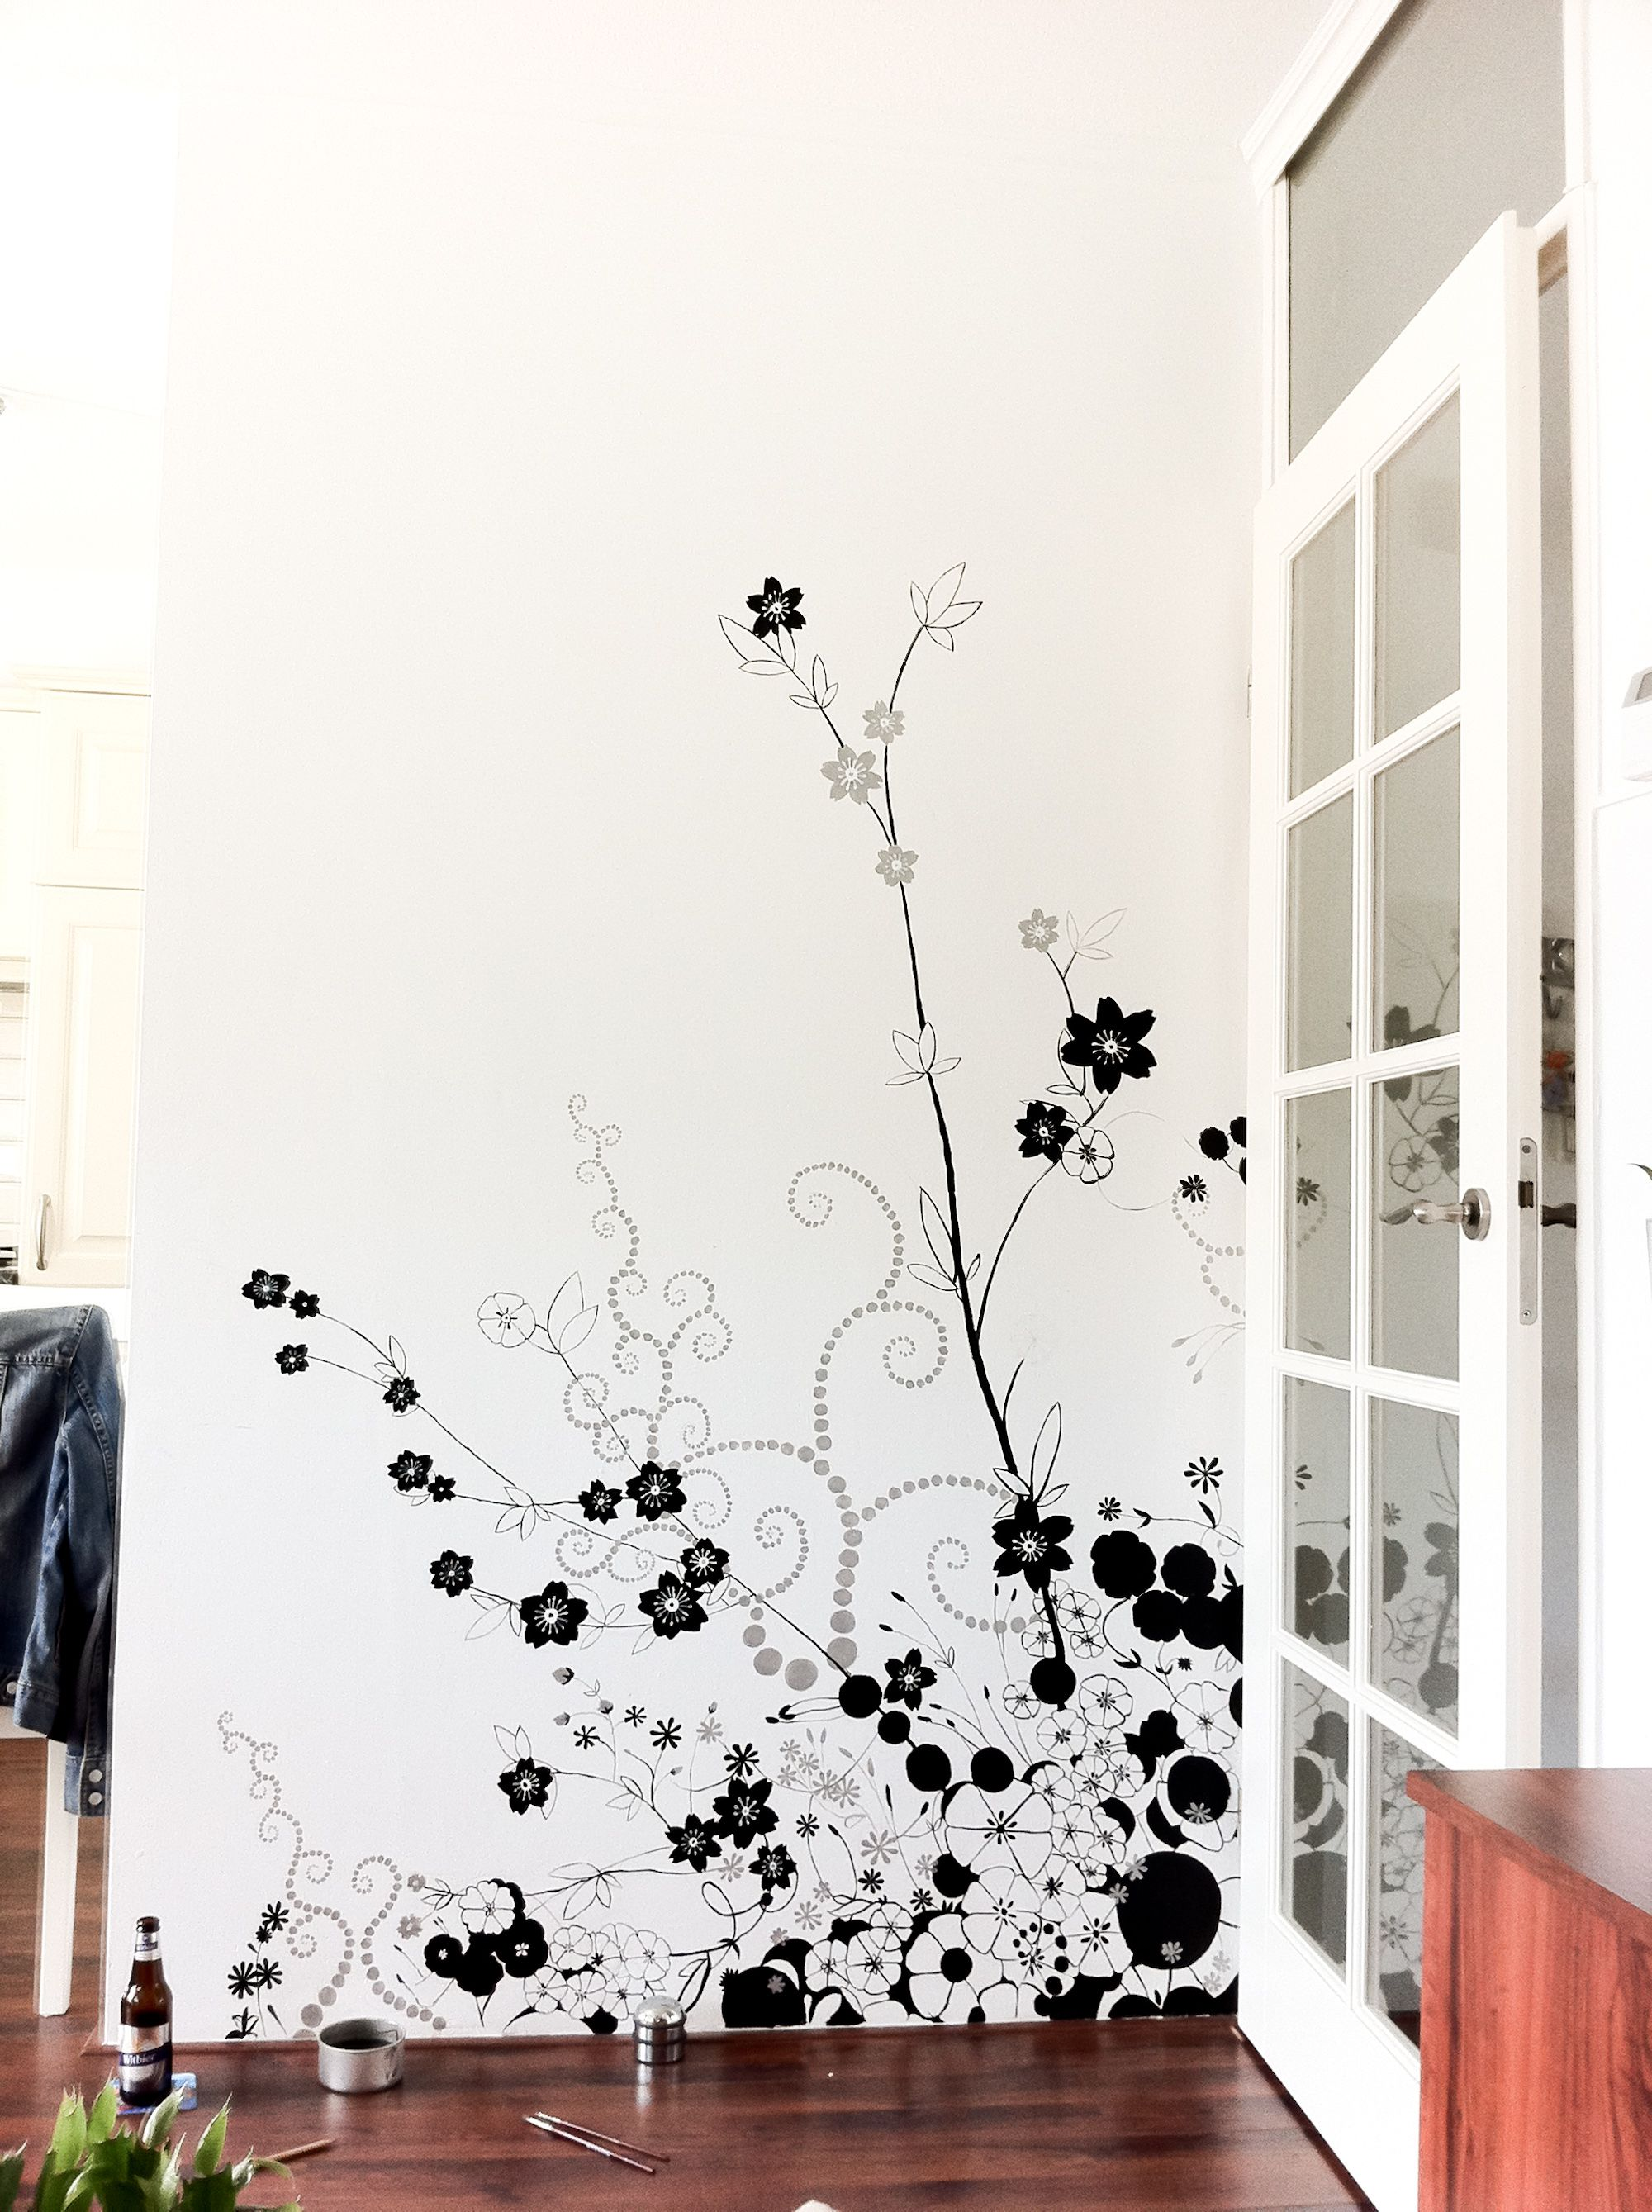 Wall Painting Patterns Designs | Wall Painting Idea | Pinterest ...